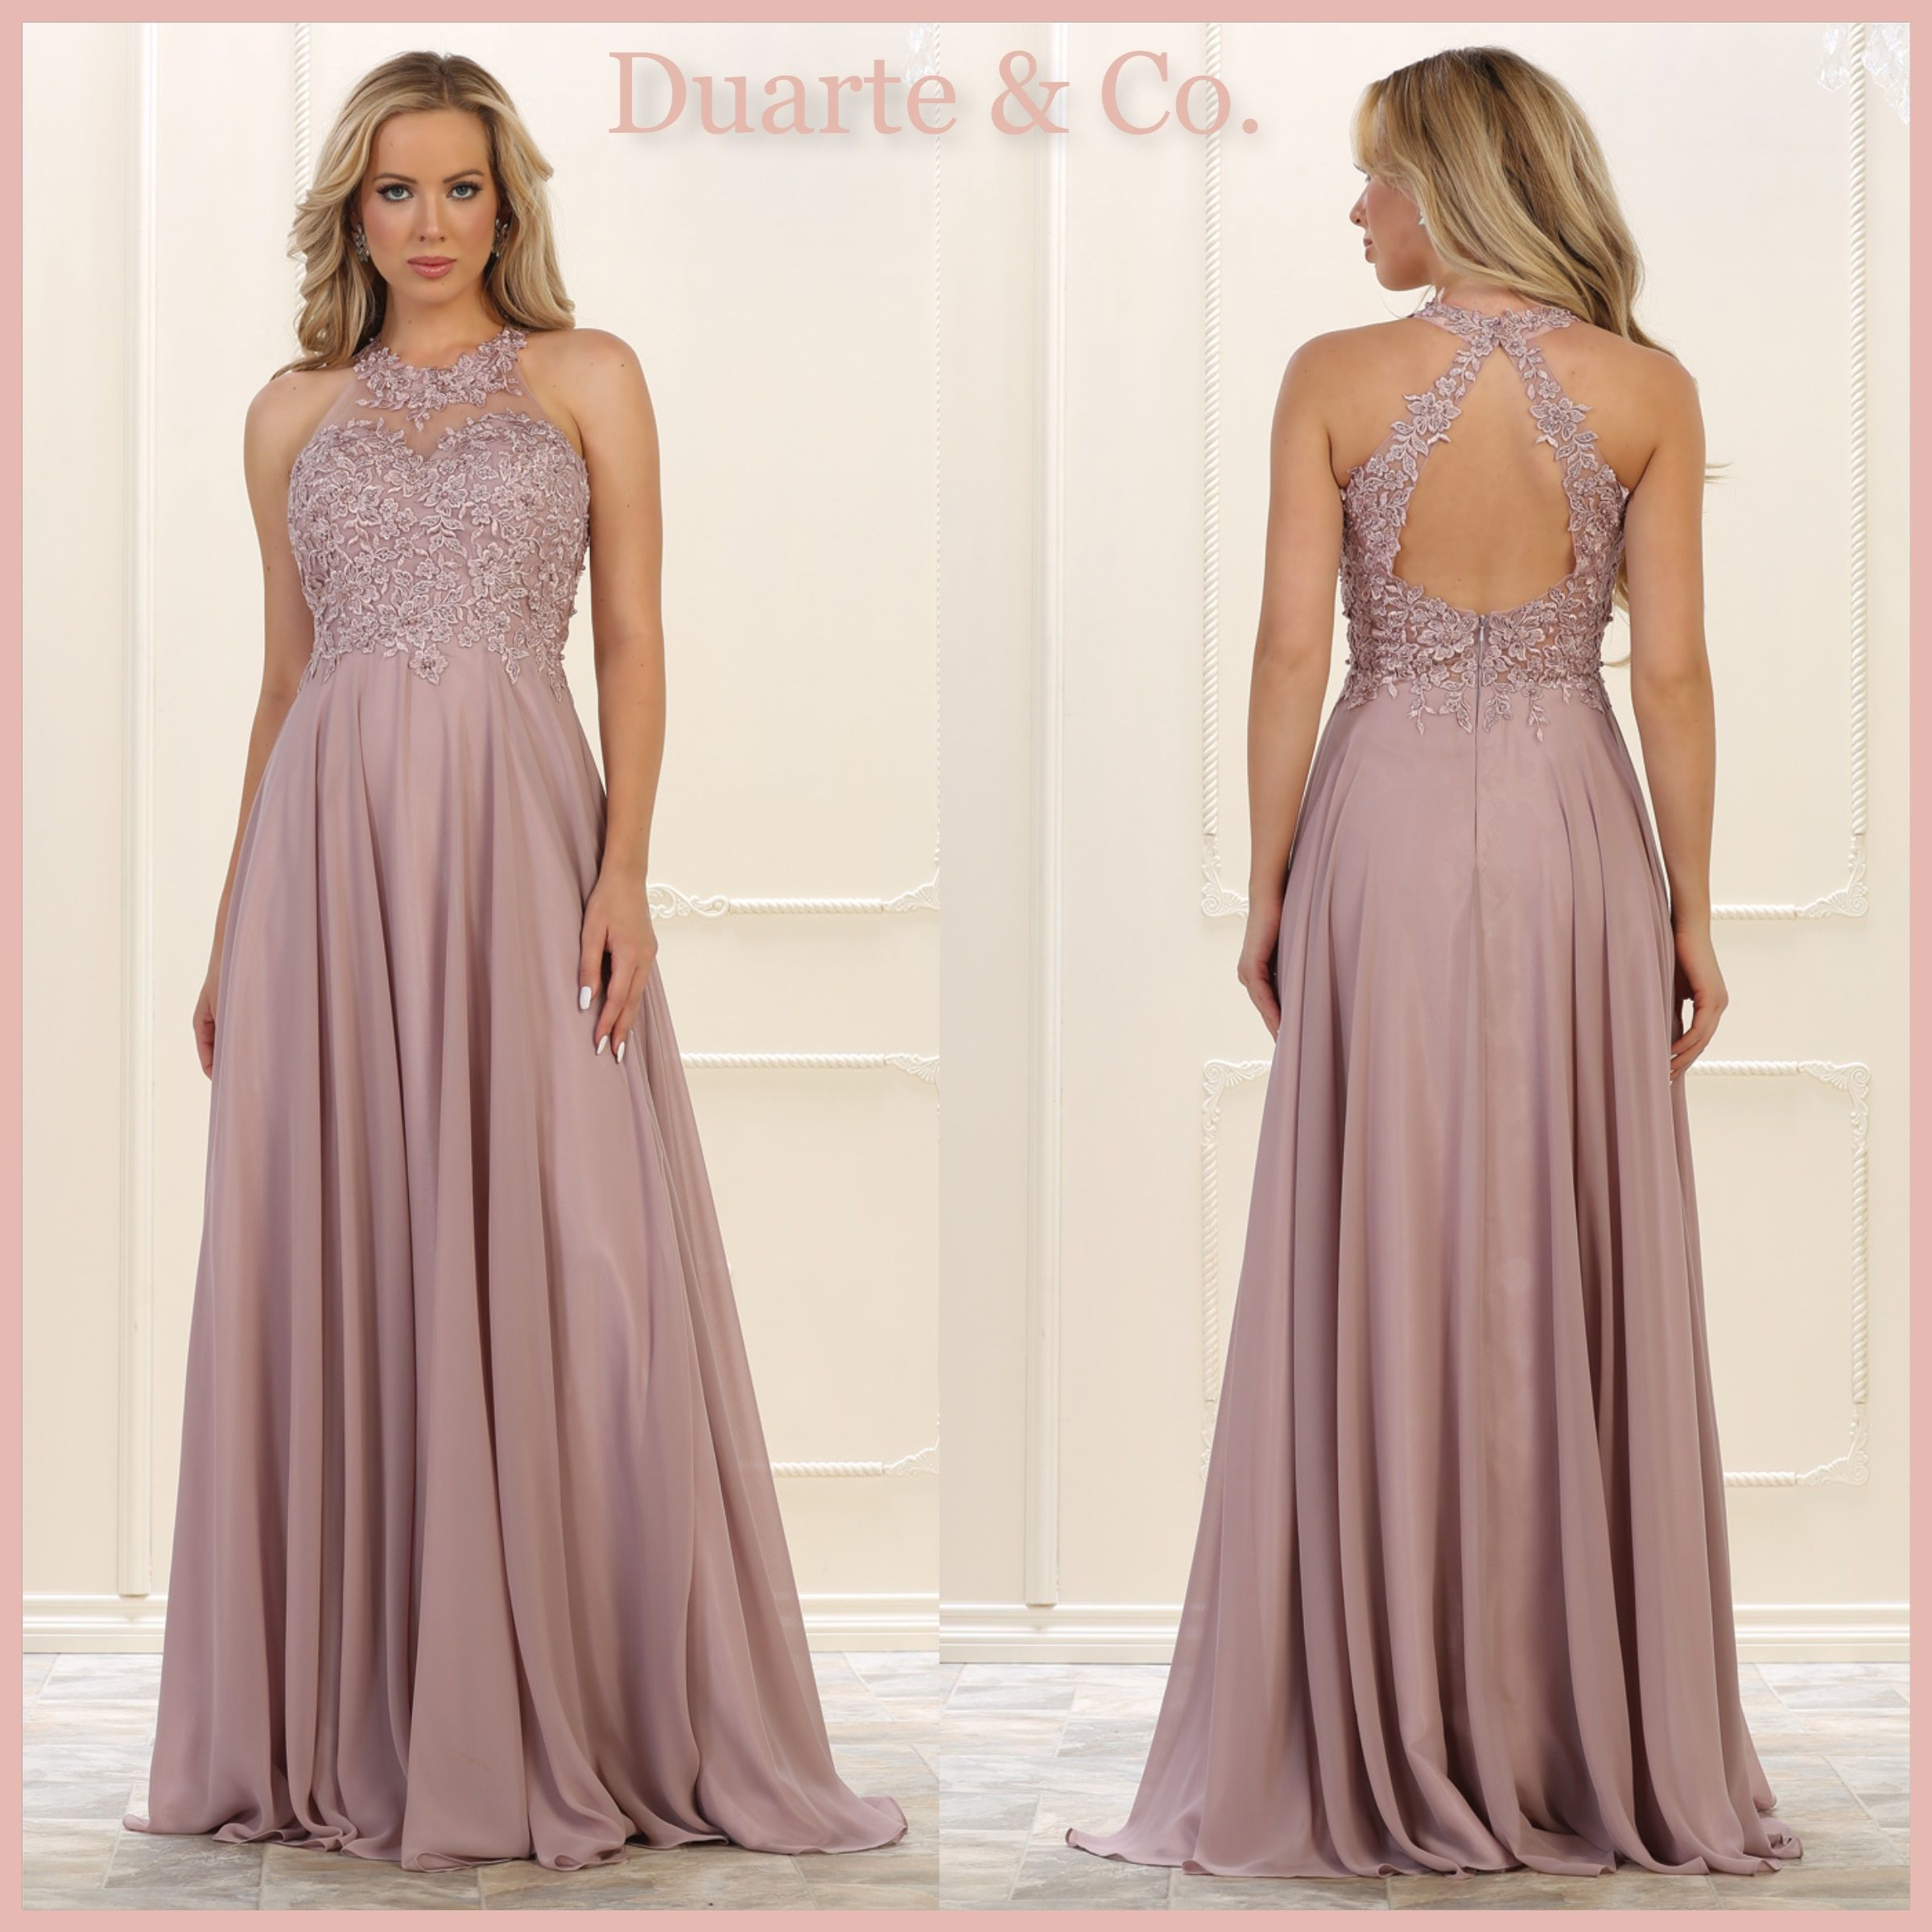 1df976b2ed4 LC215572  150.00 Long Halter Chiffon Dress W Plus Sizes Comes in 5 colors  Available in PLUS sizes 4 to size 20.